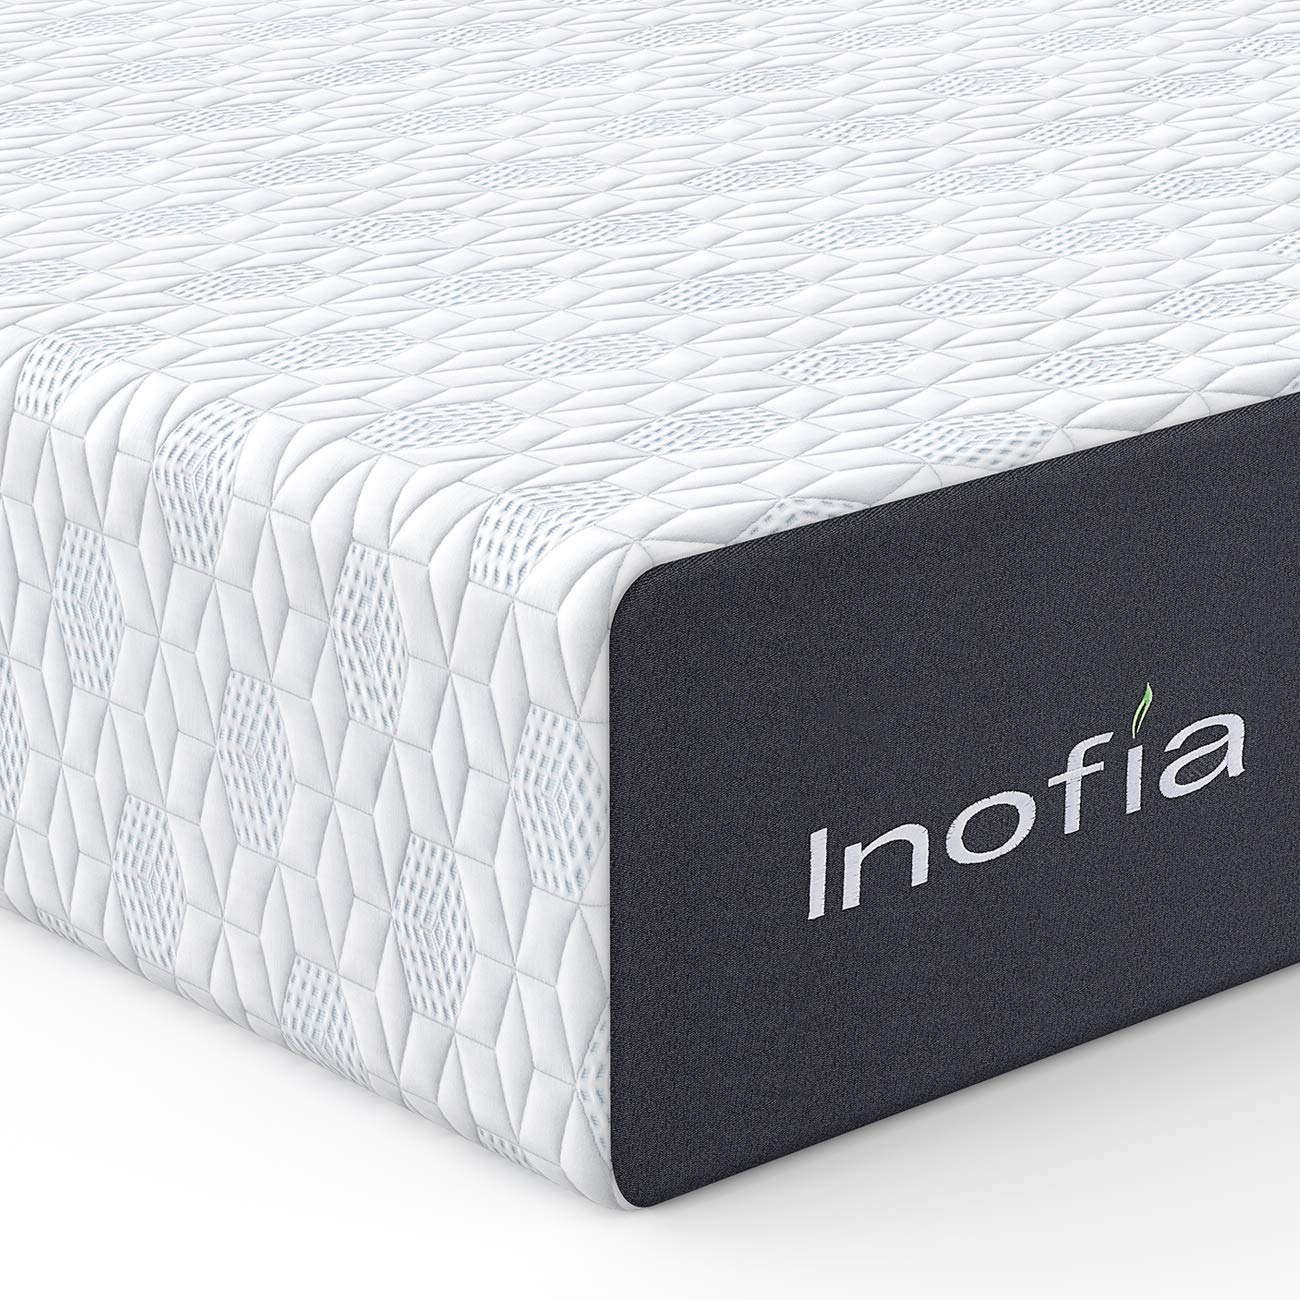 Queen Mattress, Inofia 12 Inch Responsive Memory Foam Mattress in a Box, Sleep Cooler with More Pressure Relief & Support, CertiPUR-US Certified, 100 Nights Trial, 10 Years Warranty